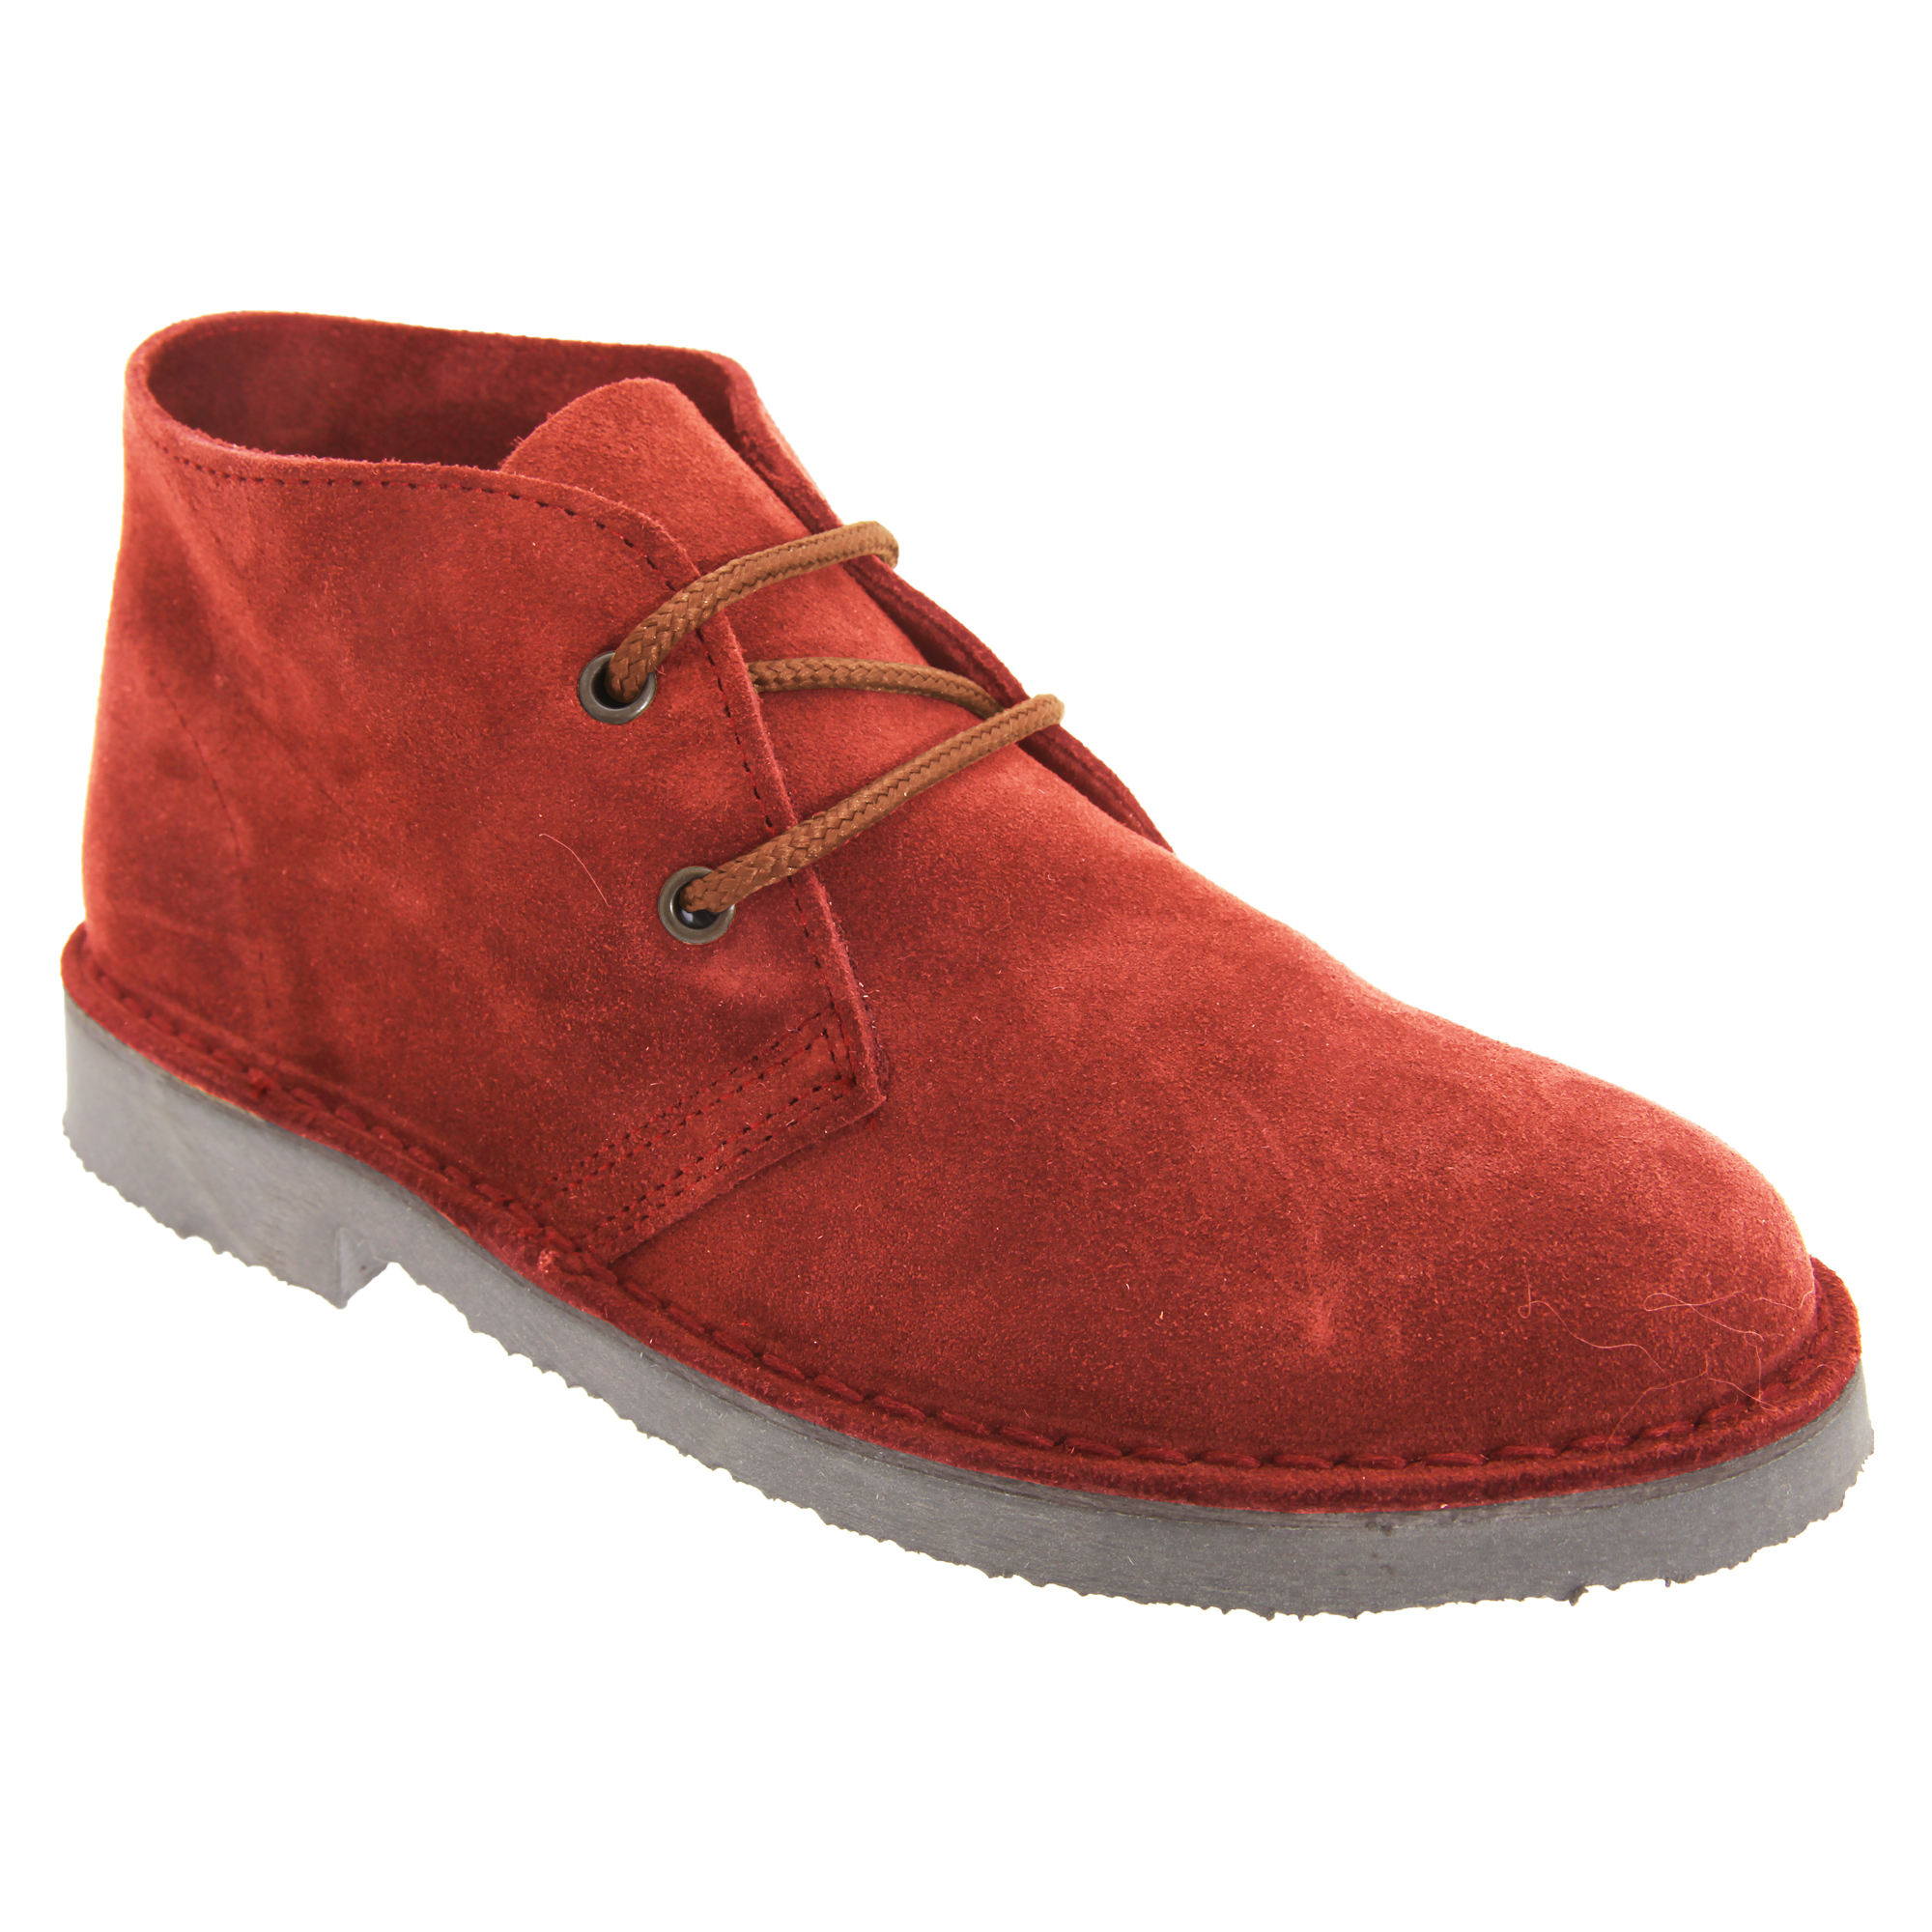 Roamers Mens Real Suede Unlined Desert Boots (6 UK) (Red)